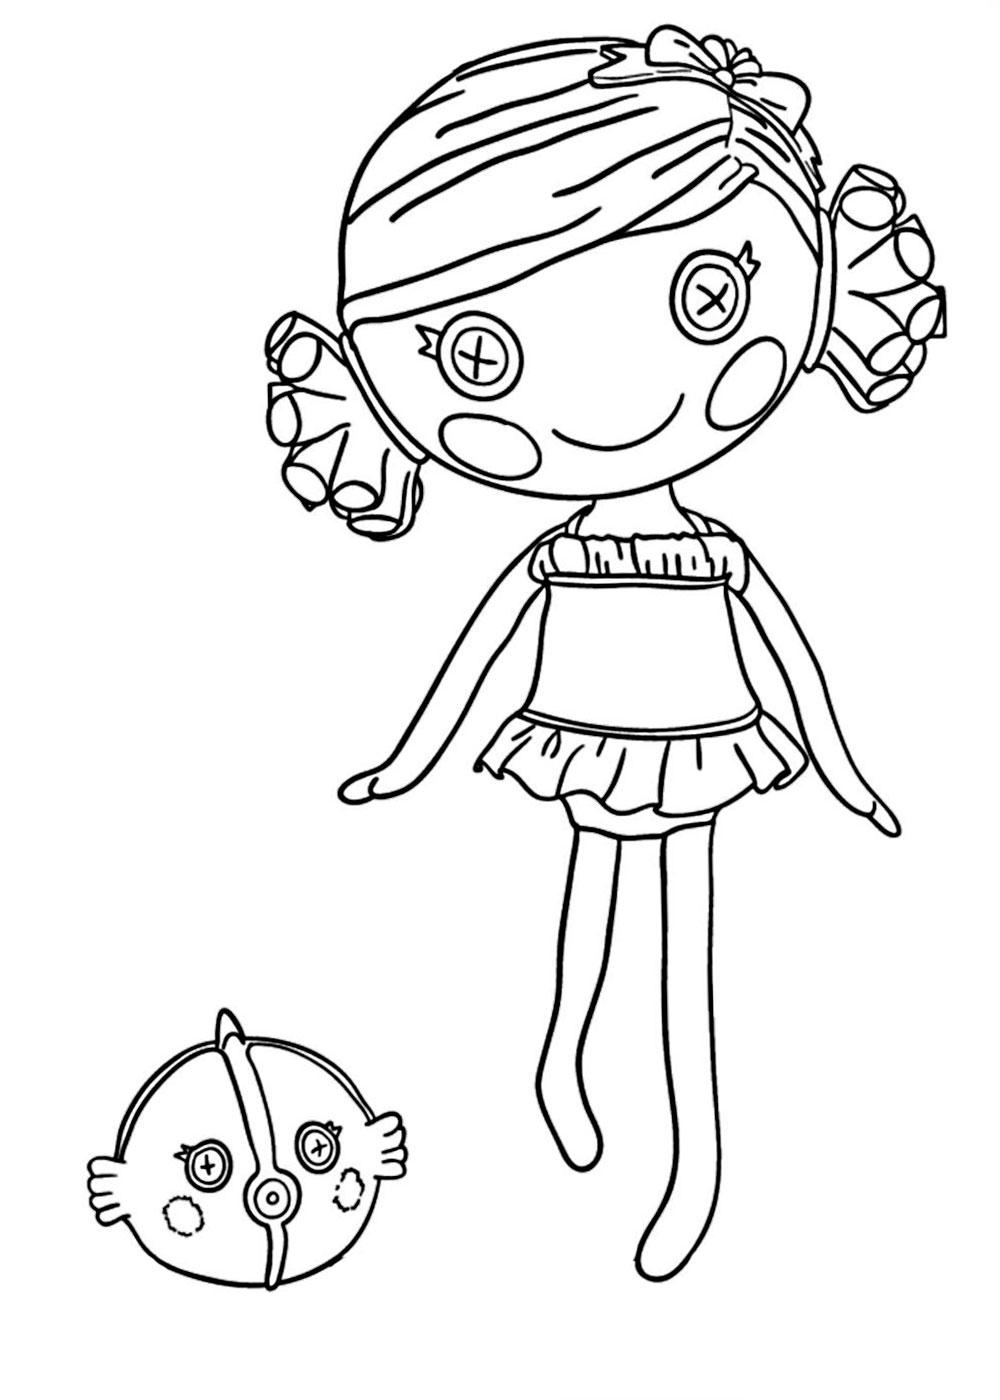 lalaloopsy coloring pages for girls to print for free - Lalaloopsy Coloring Pages